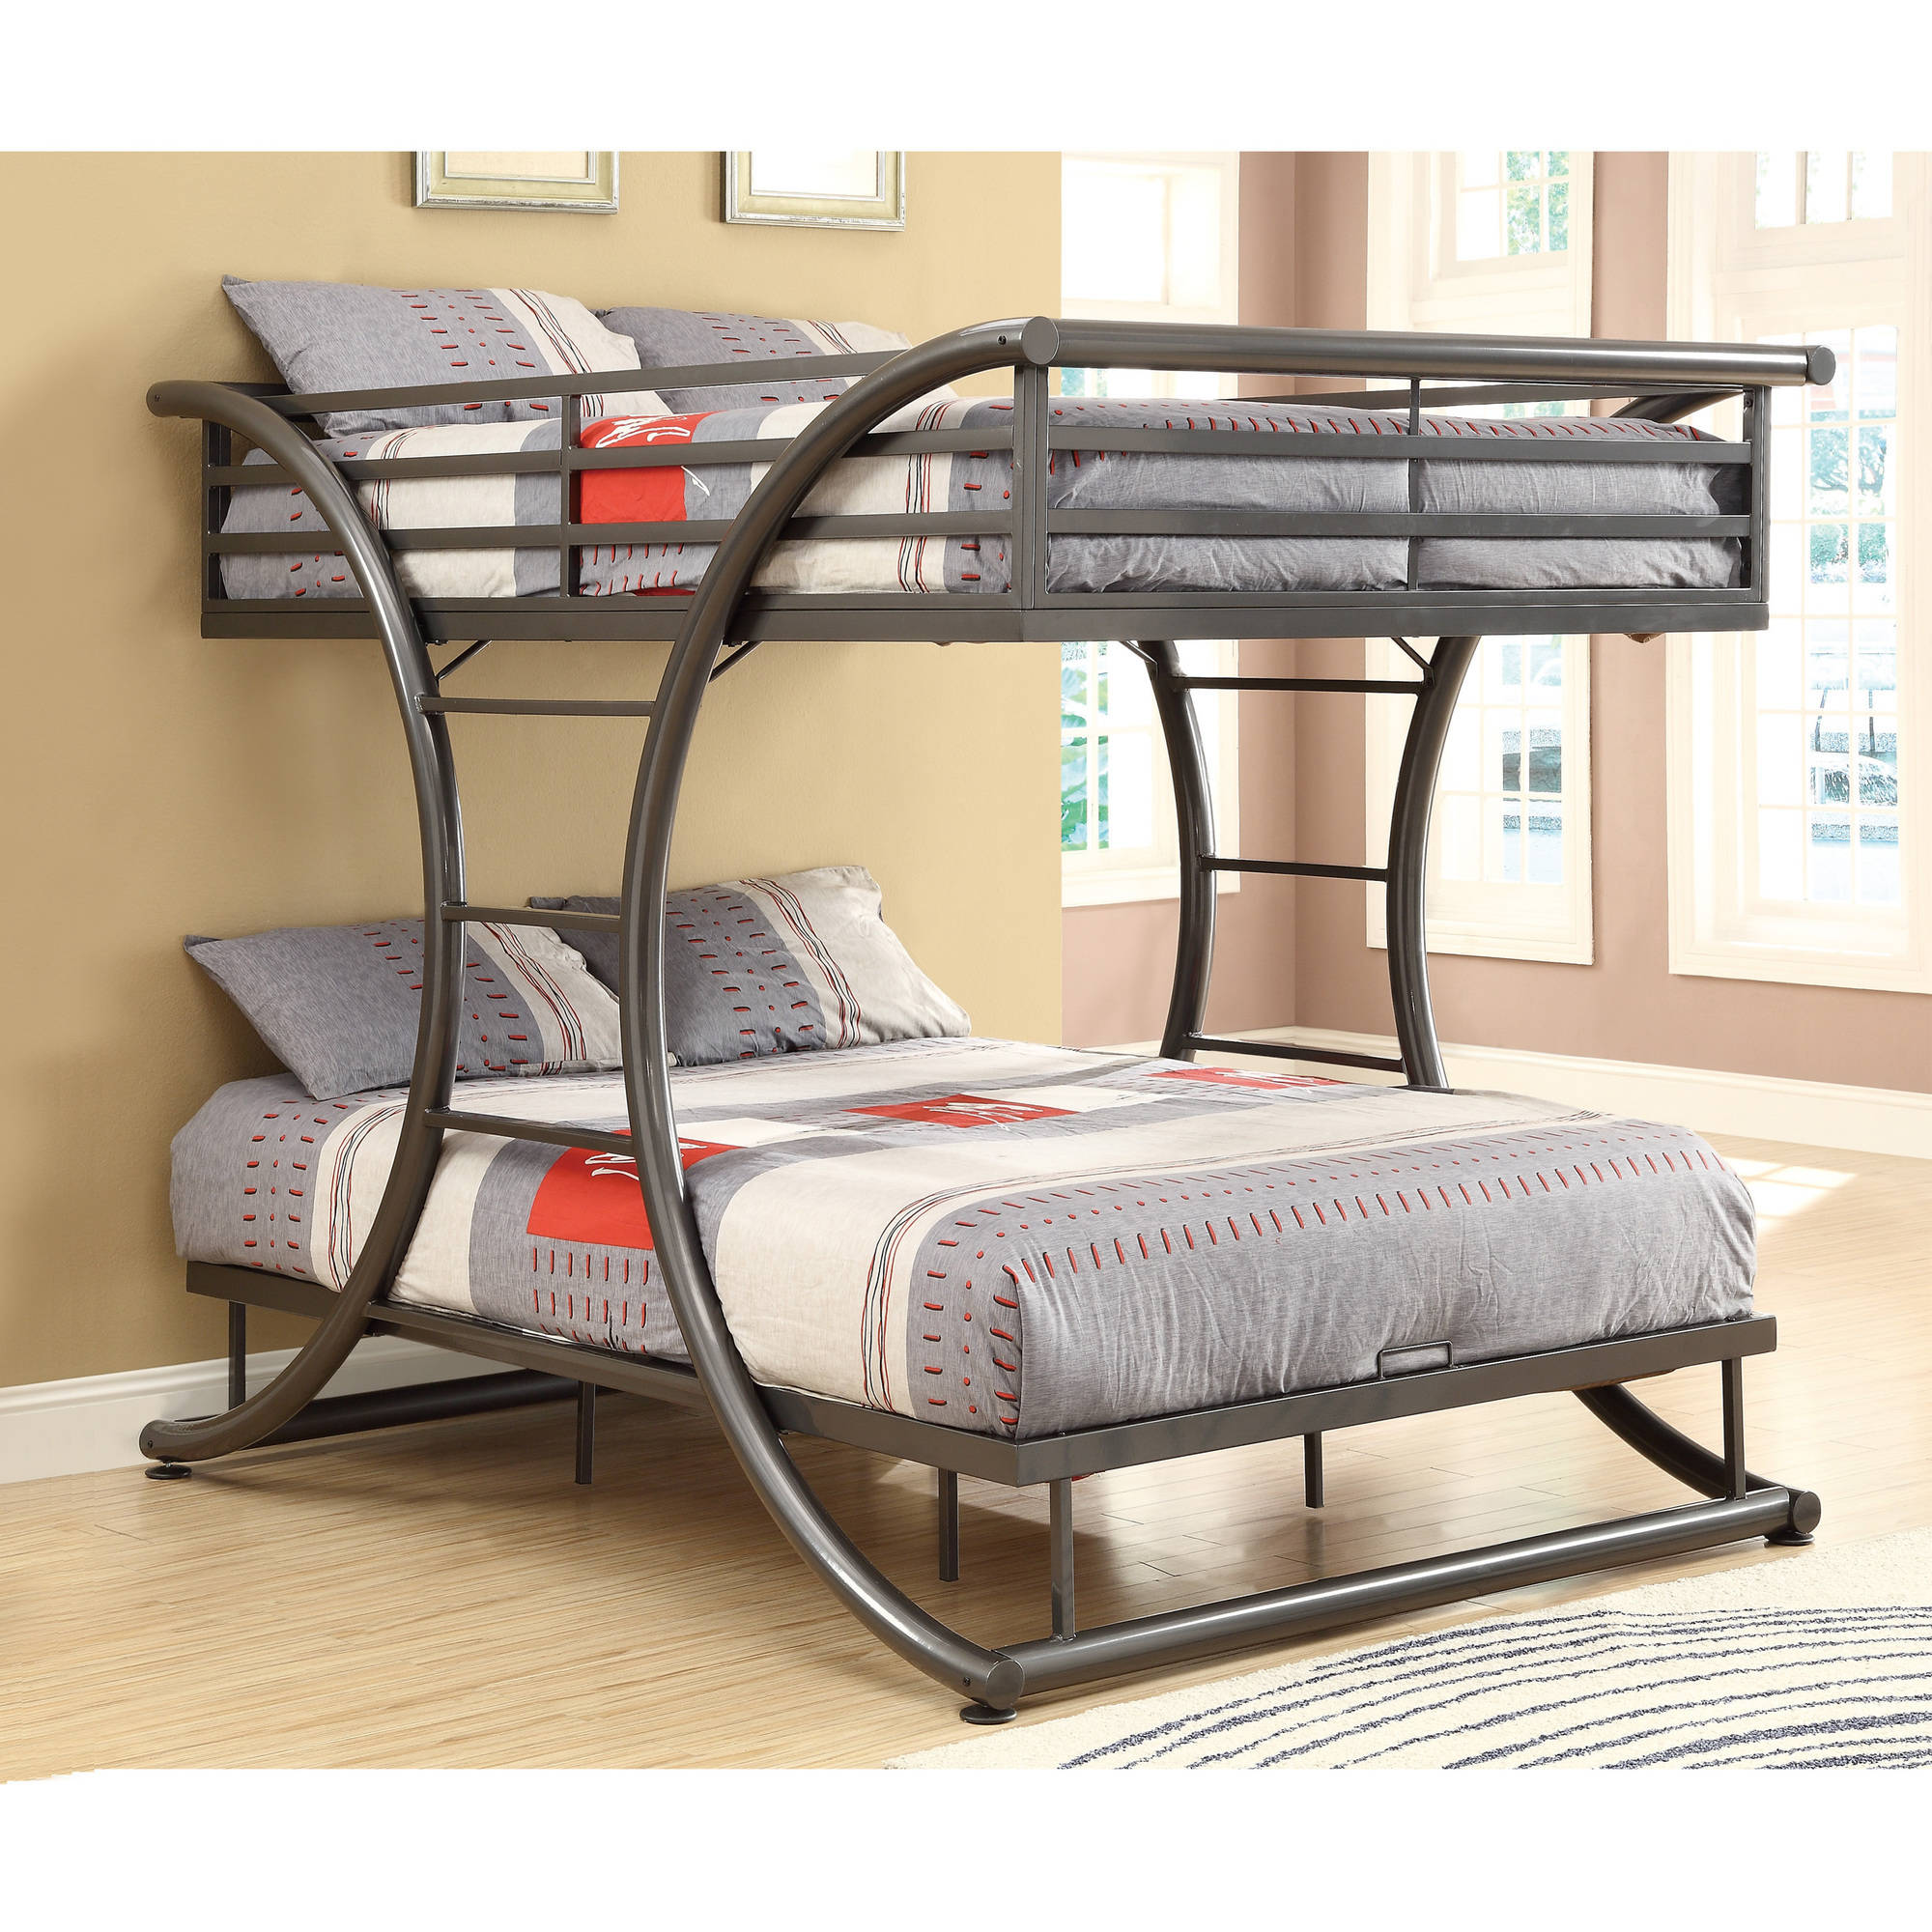 Coaster Full Full Metal Bunk Bed in Dark Metal Finish (Box 1 of 2) by Coaster Company